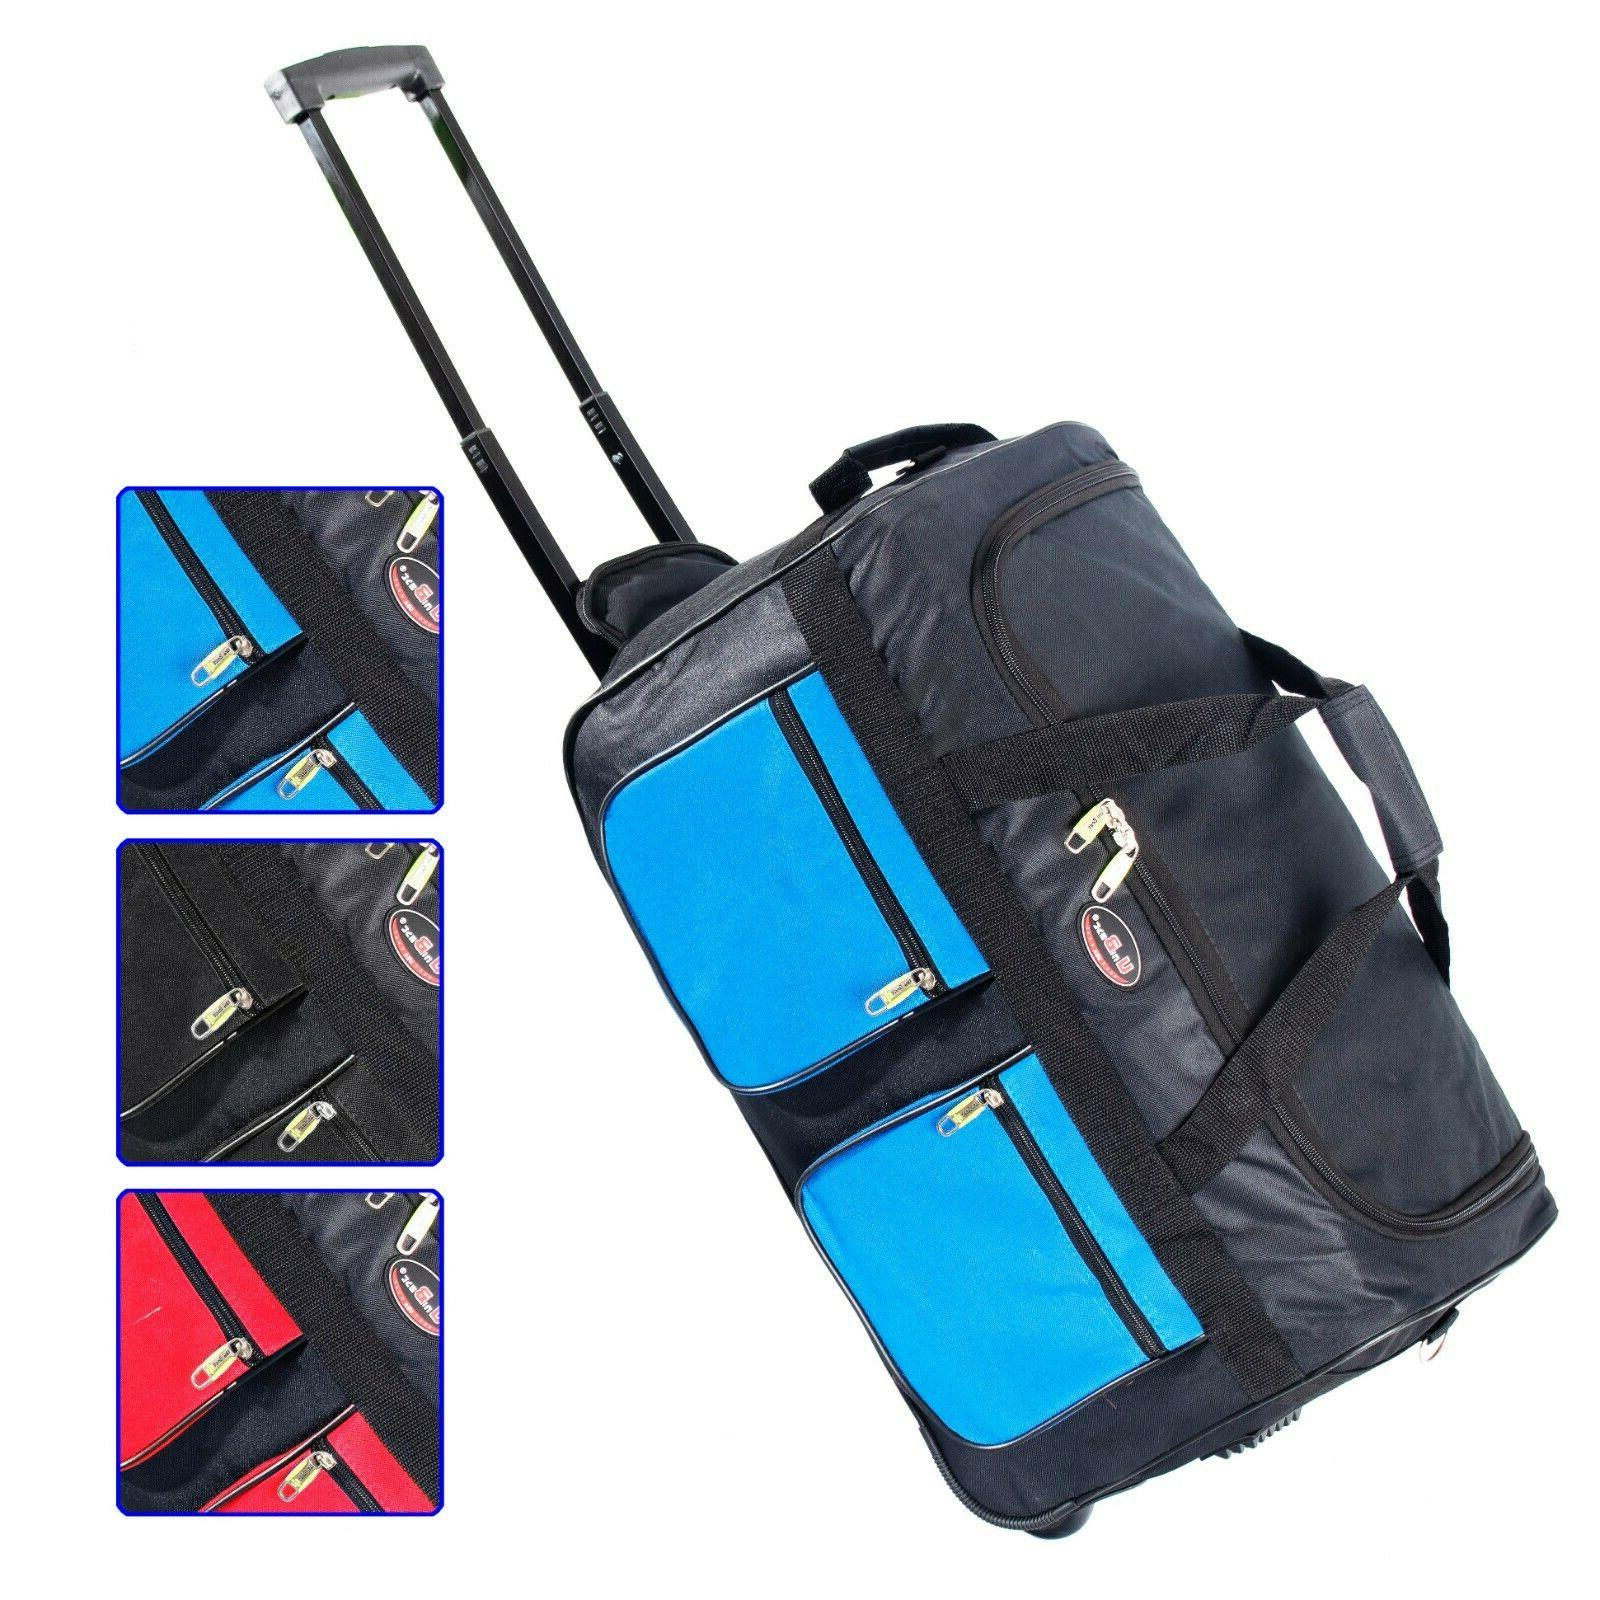 22 rolling wheeled duffle bag tote carry